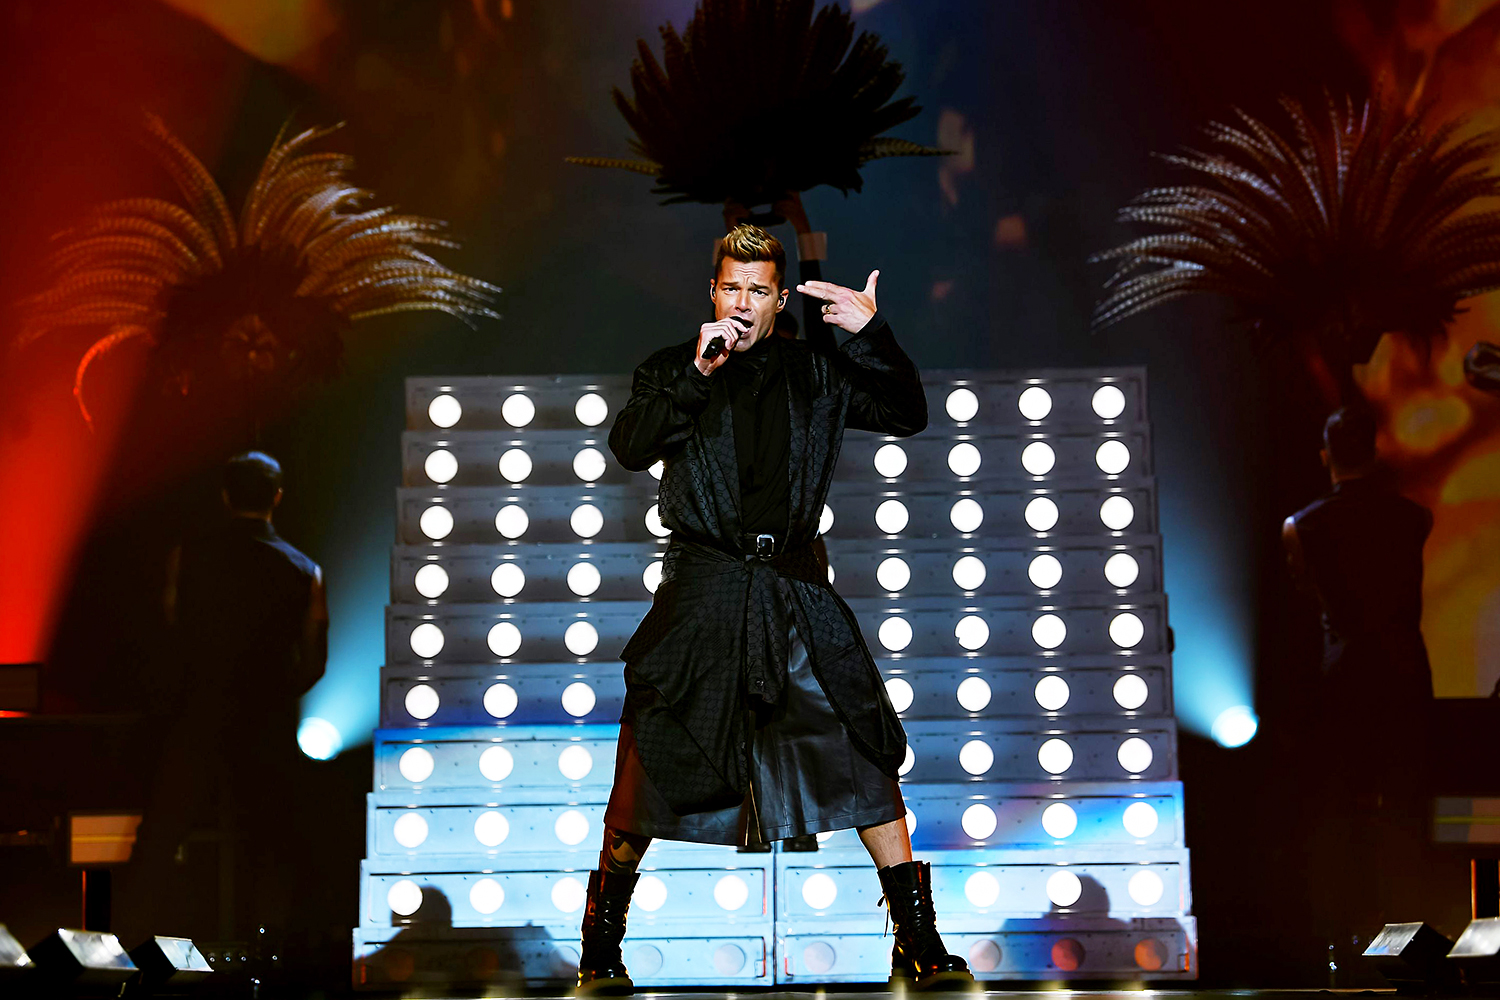 Ricky Martin performs onstage at MGM Grand Garden Arena on September 25, 2021 in Las Vegas, Nevada.